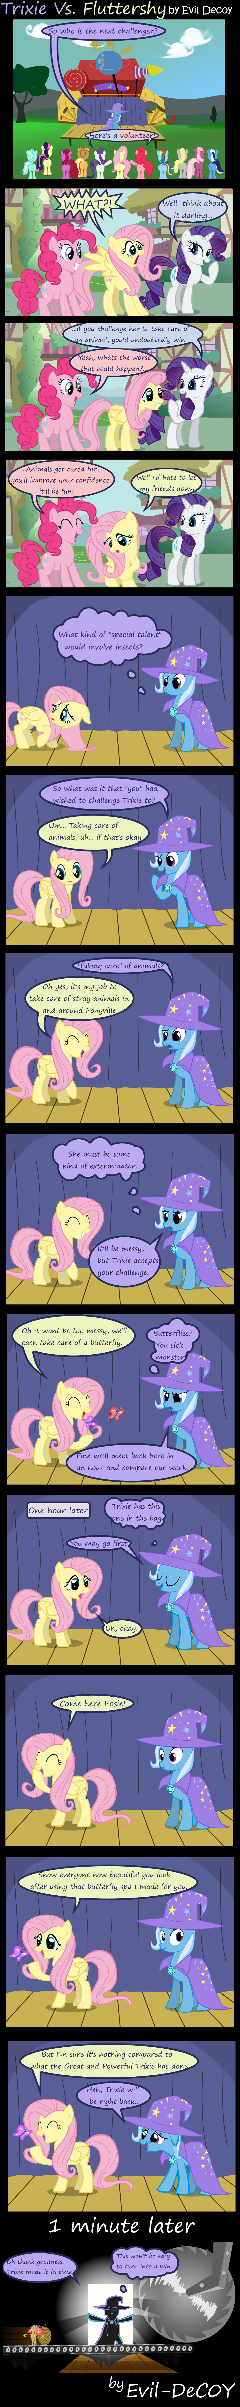 Trixie Vs. Fluttershy